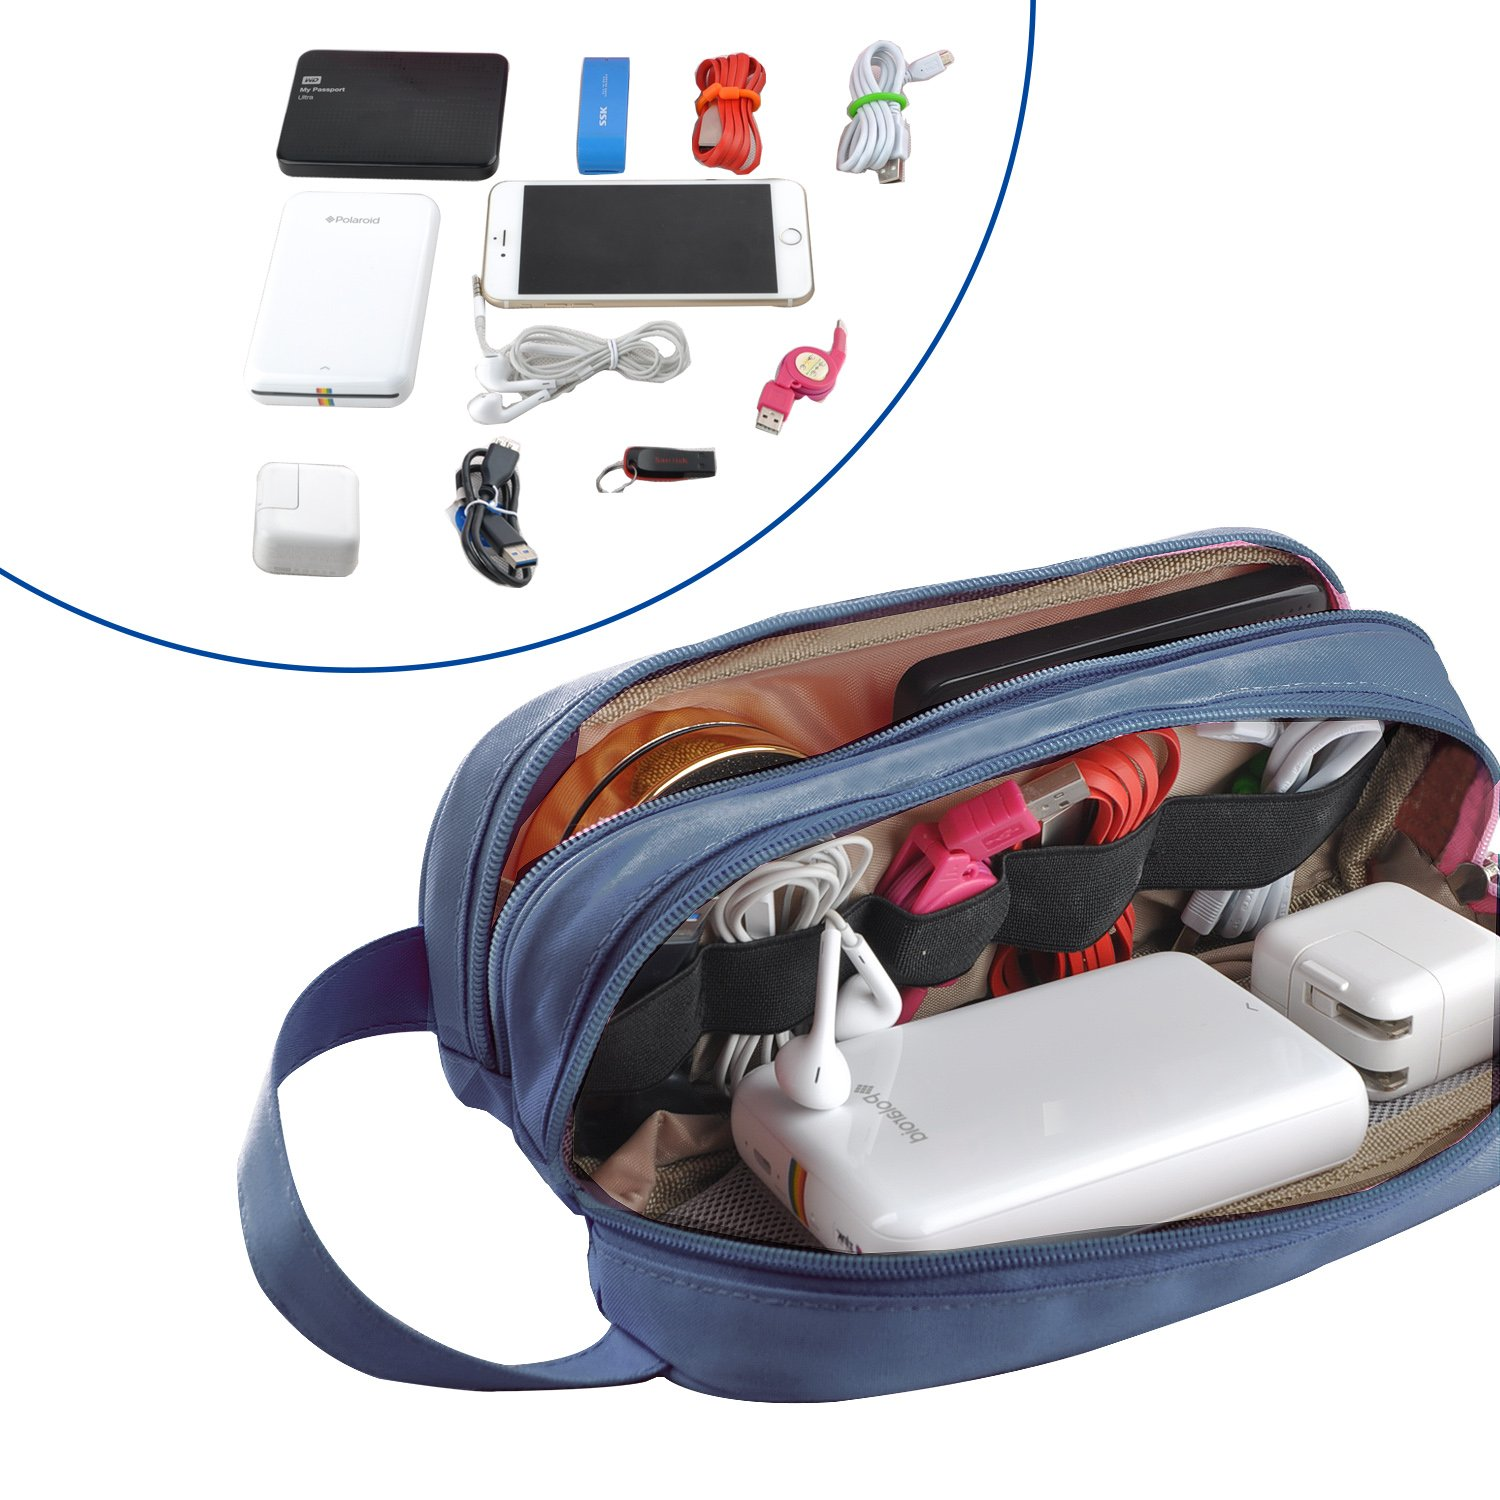 Kitron(TM) Universal Cable Cord Holder Organizer/Electronics Accessories Case Healthcare & Grooming Kit USB Drive Shuttle-an All in One Travel Organizer (Blue) by KITRON (Image #6)